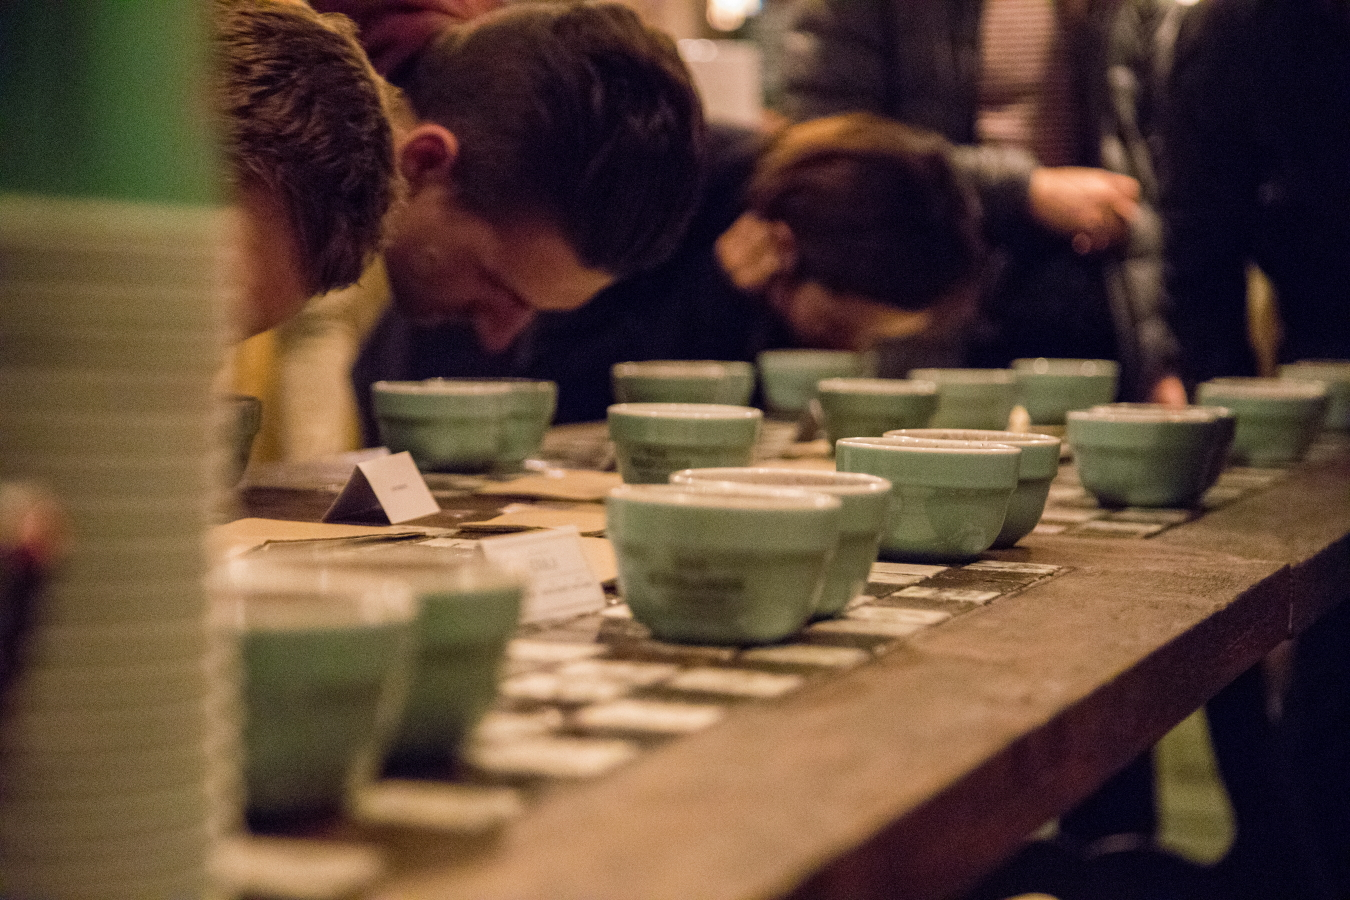 grounds cupping24byo.JPG